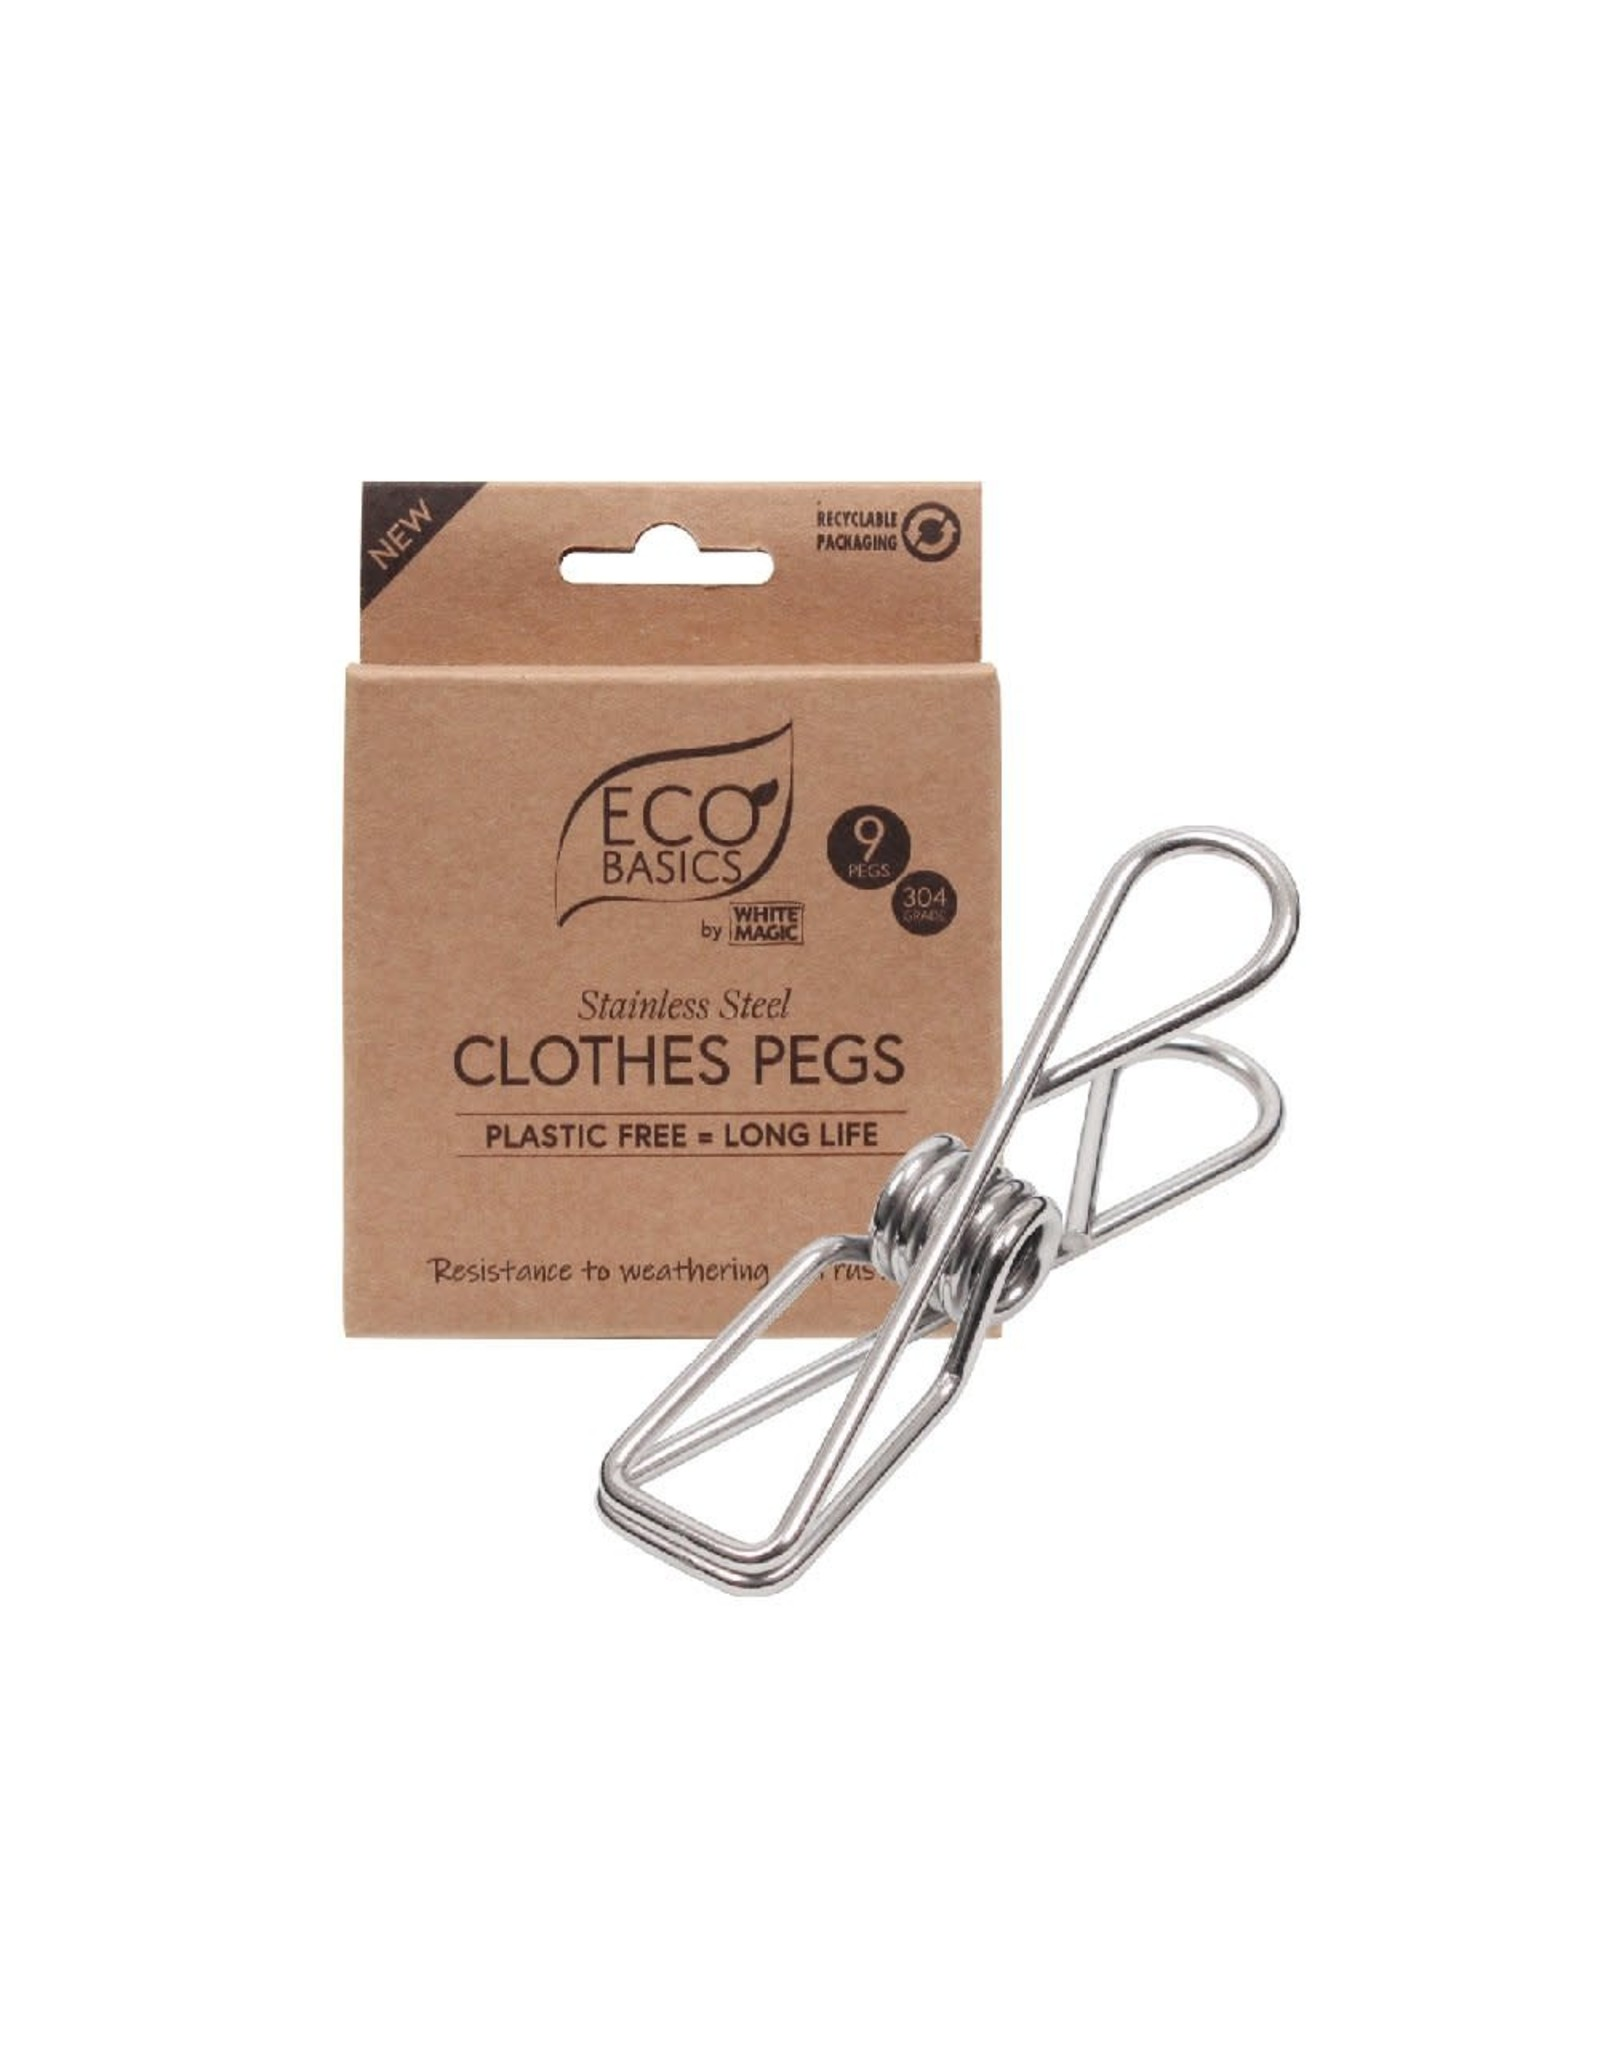 Eco Basics Clothes Pegs - Stainless Steel - 9pk